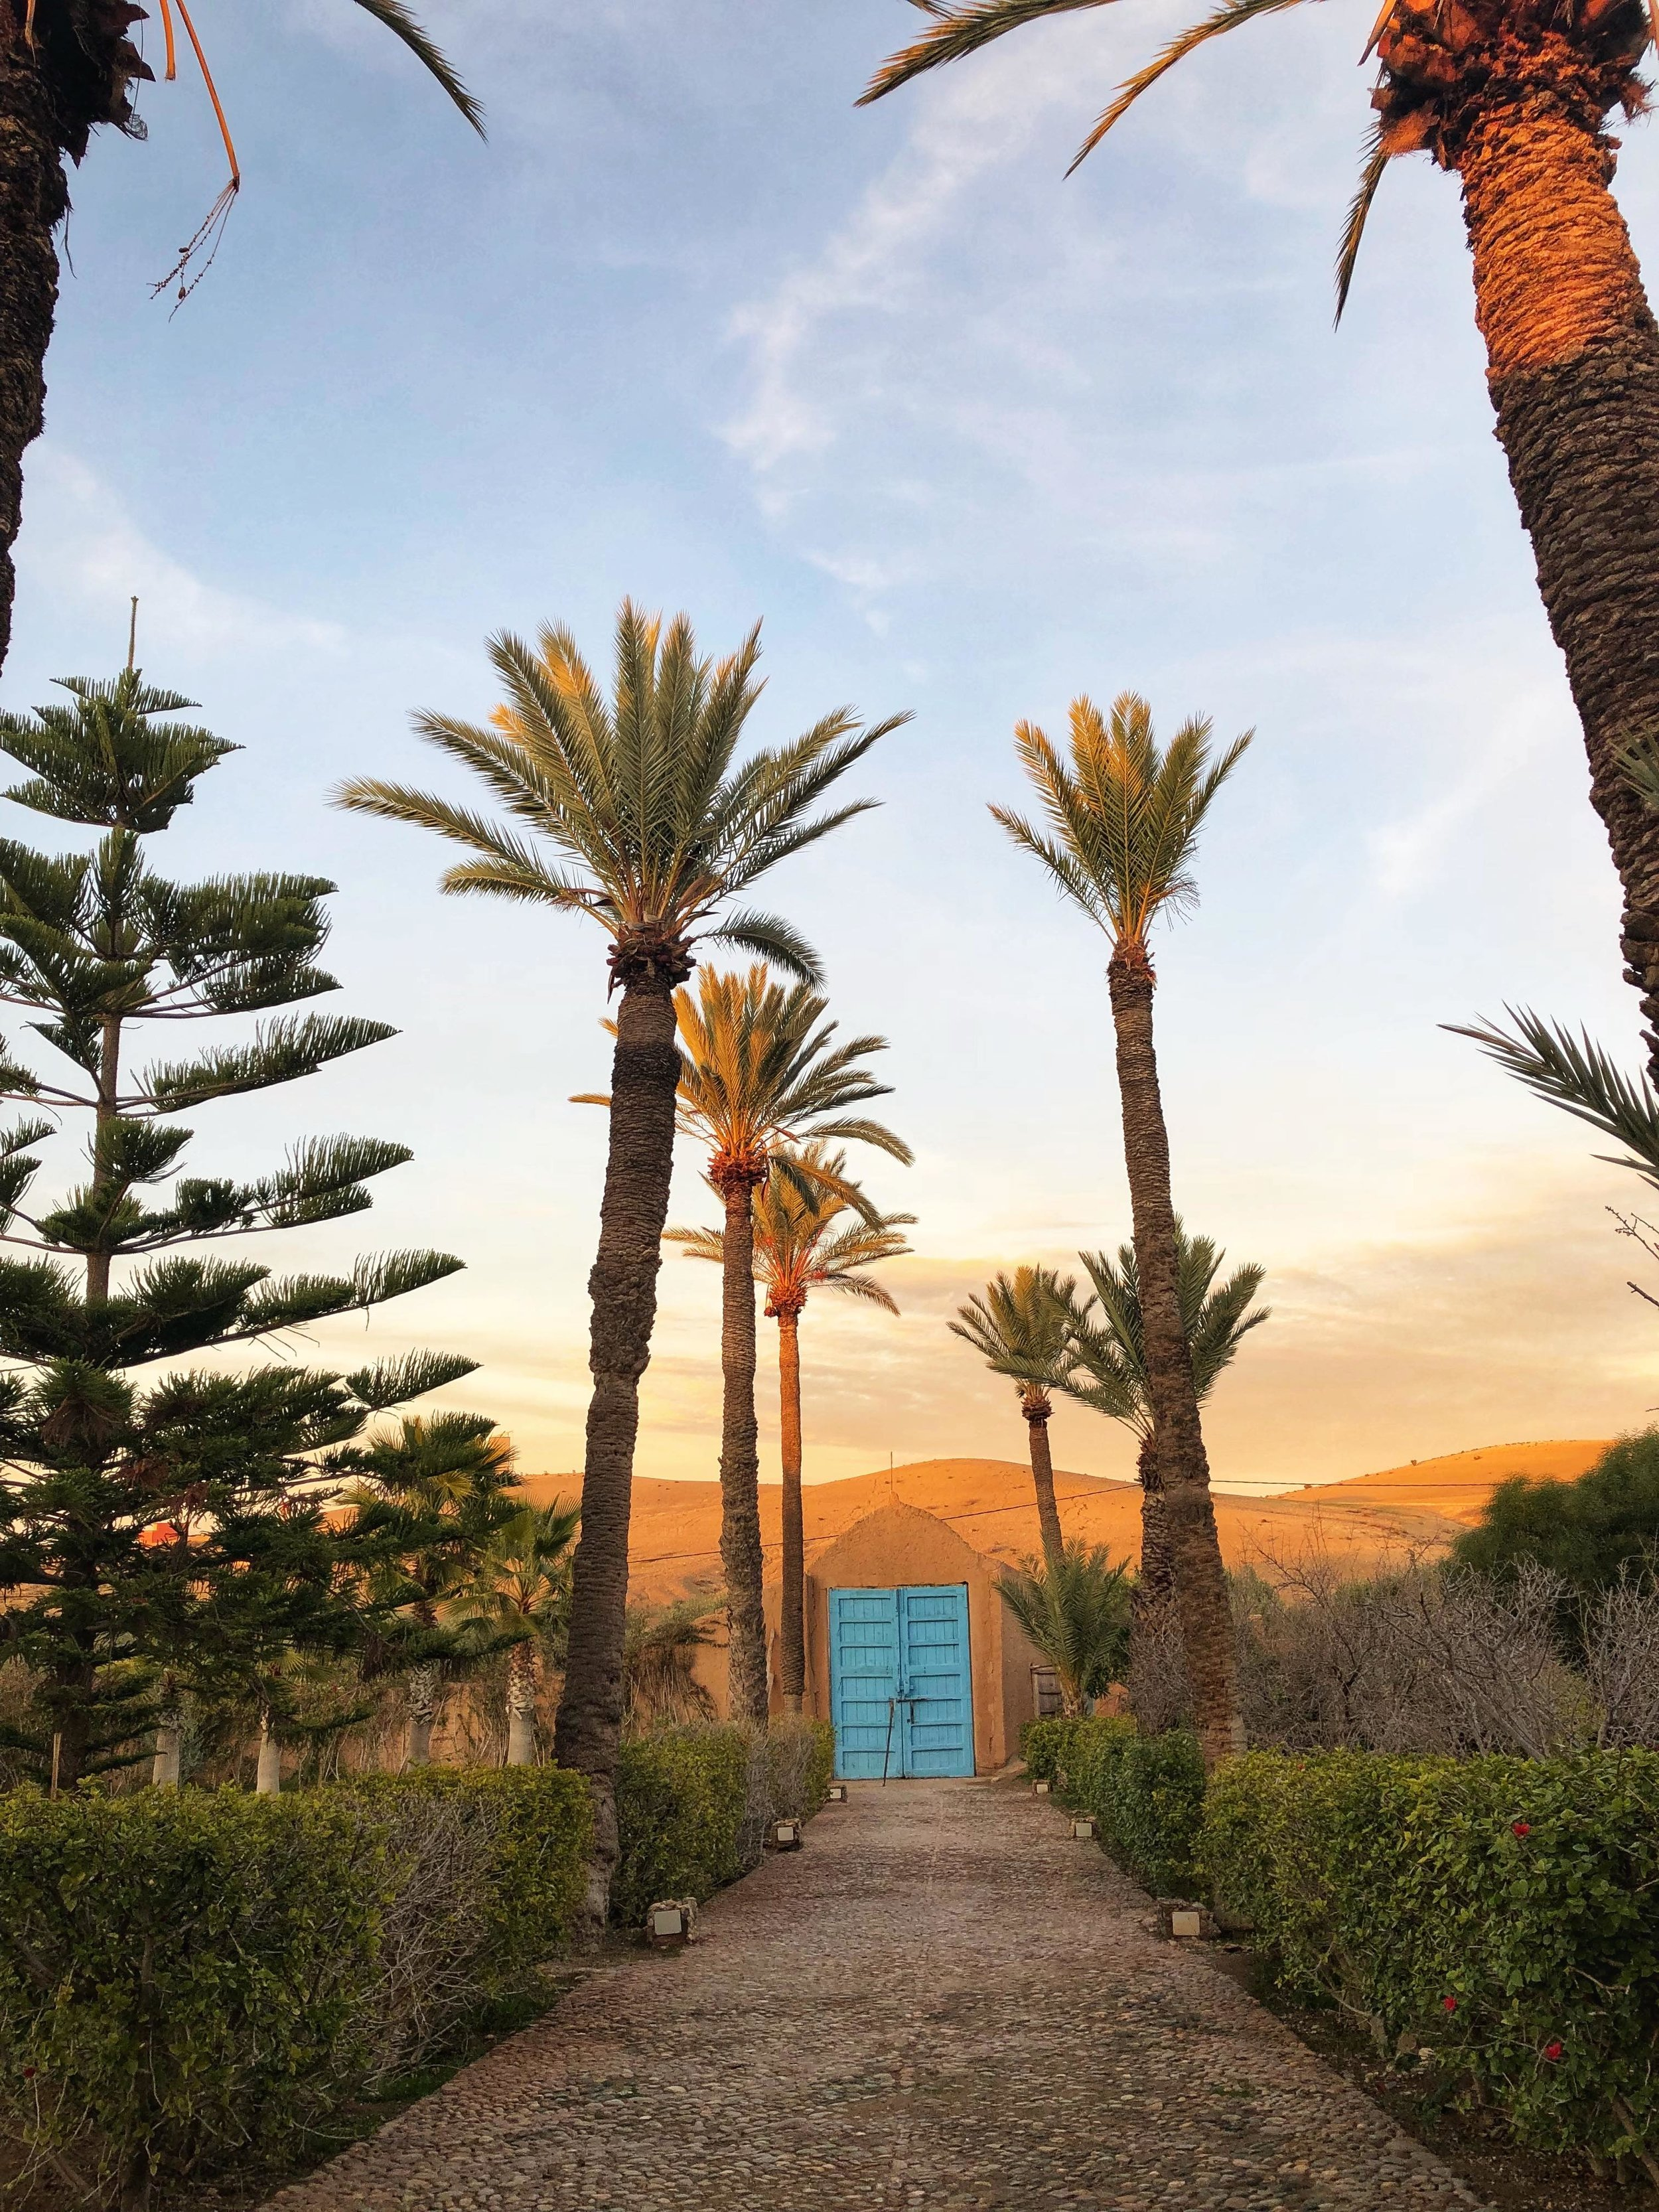 Our ecokasbah stay